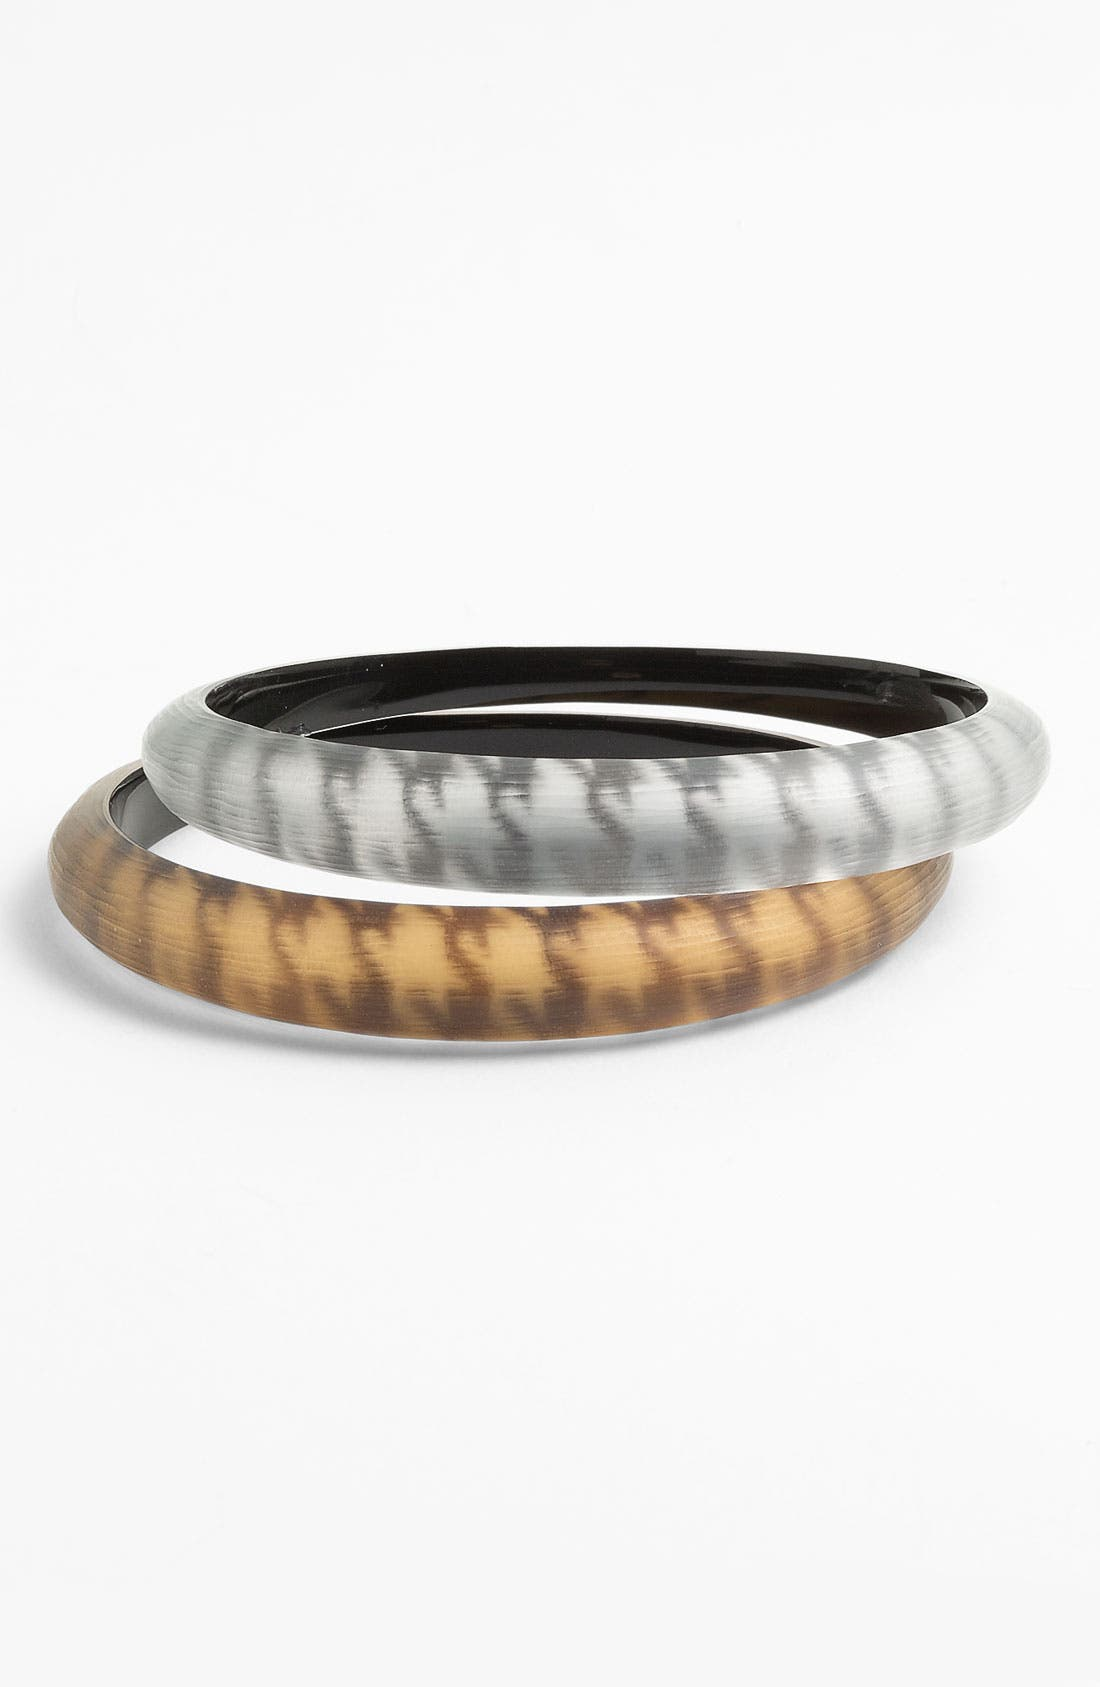 Alternate Image 1 Selected - Alexis Bittar 'Houndstooth' Skinny Tapered Bangle (Nordstrom Exclusive)